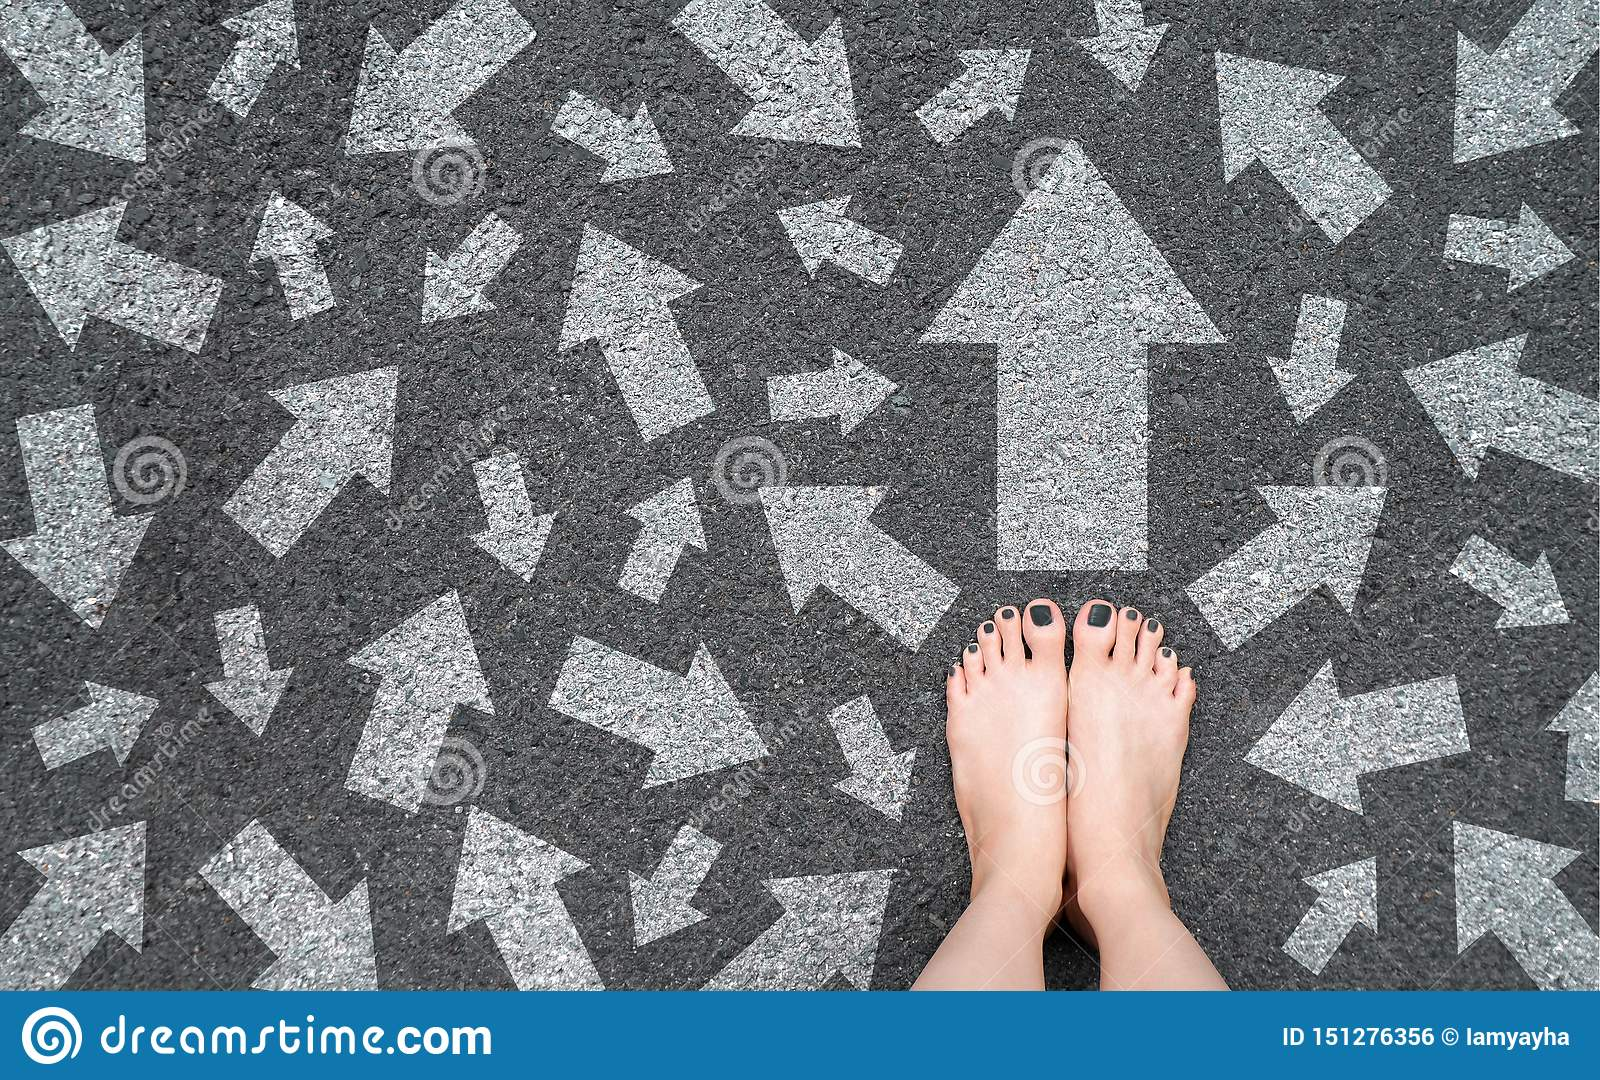 Feet and Arrows on Road. White Arrow Choice Concept. Woman Bare Feet with Gray Nail Polish Manicure Standing on Grunge Concrete